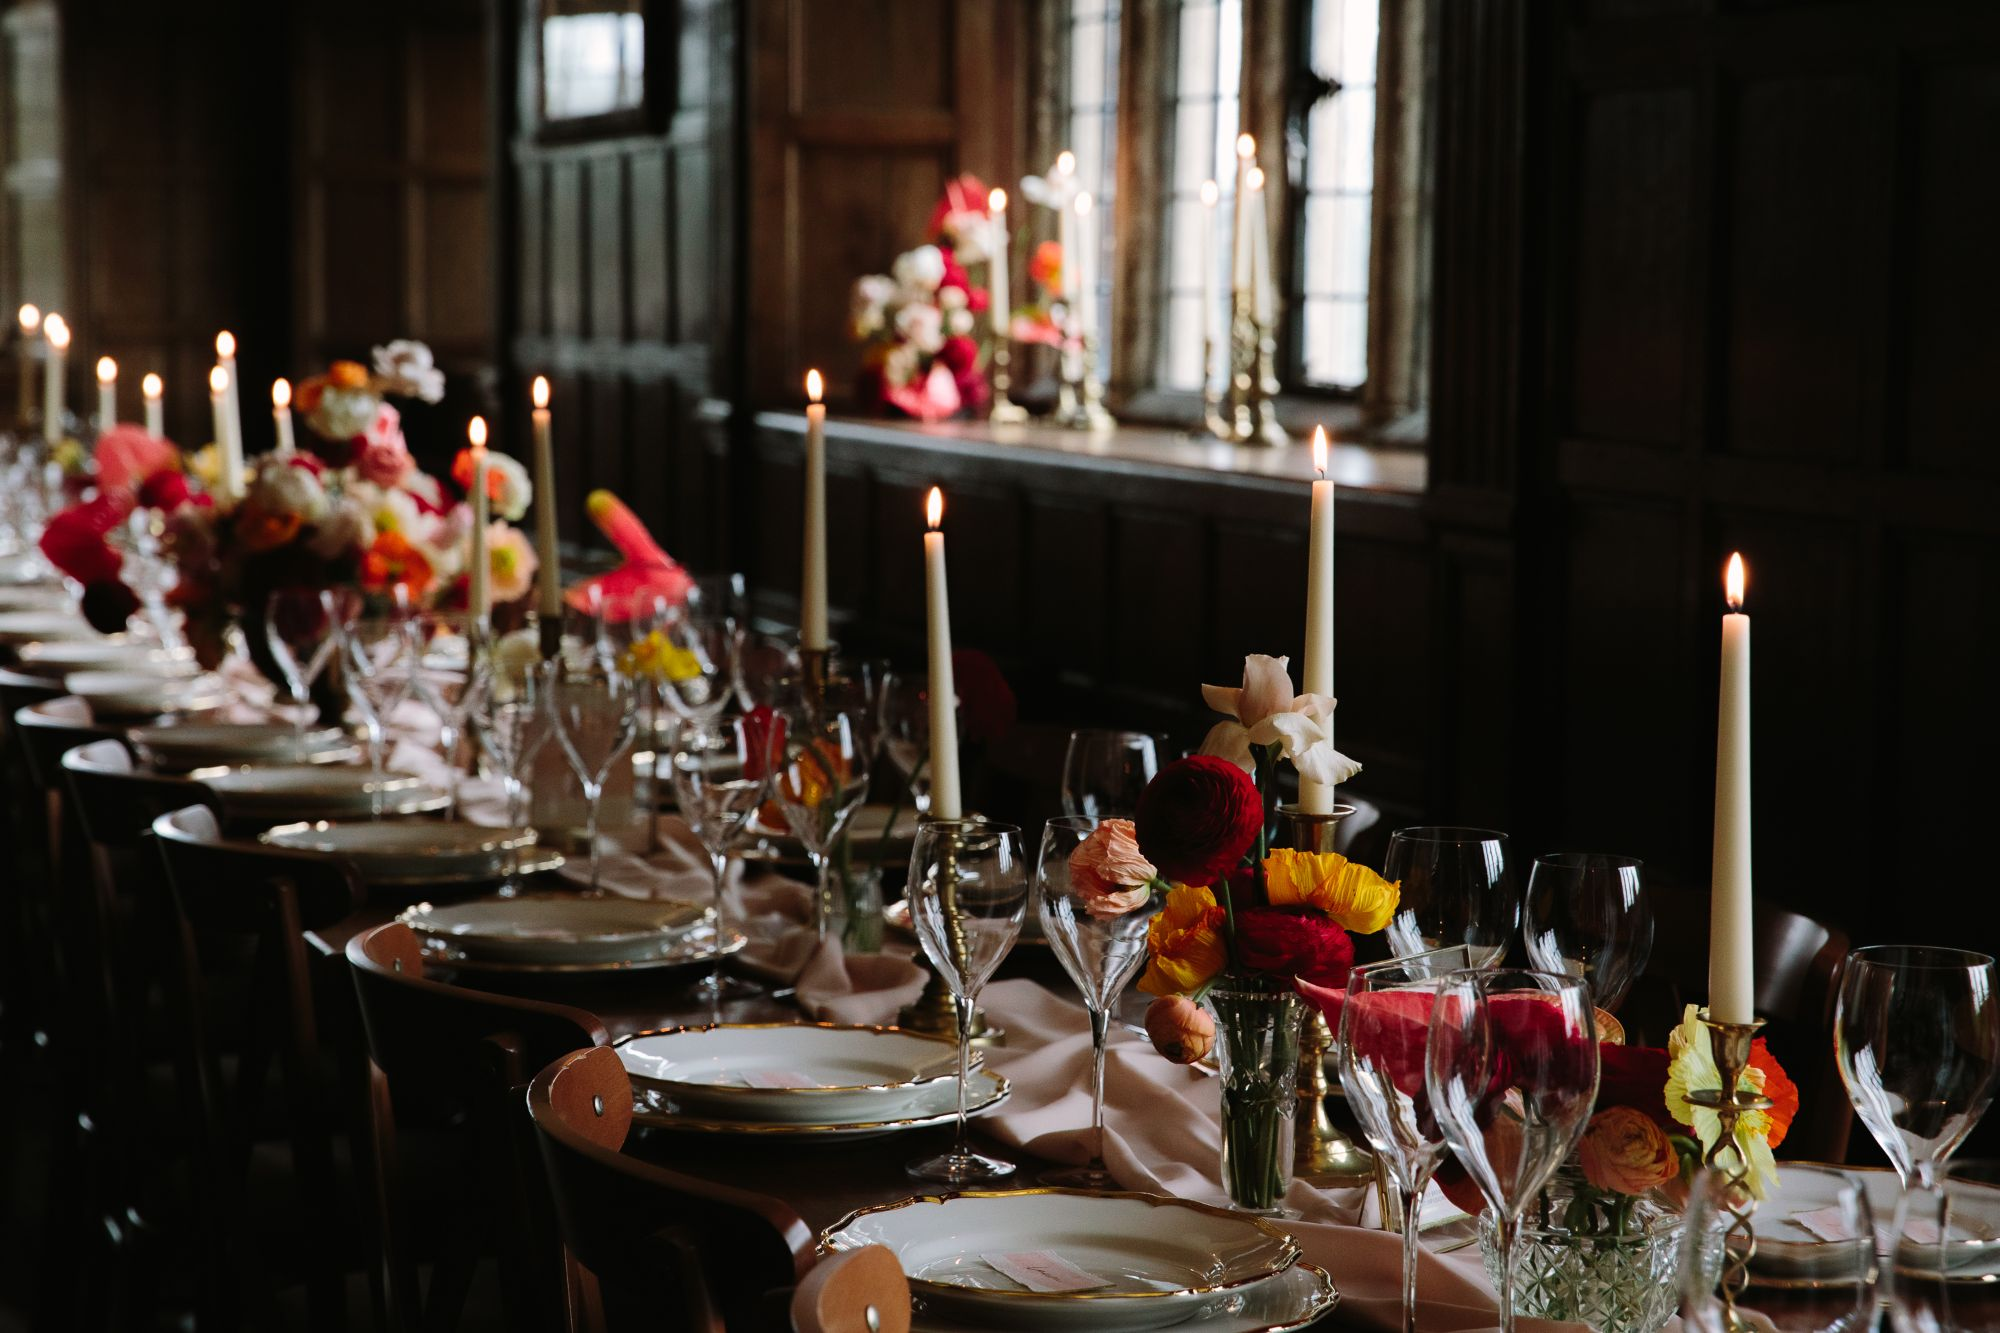 PHILIPPA-JAMES-PHOTOGRAPHY- banquet tables.jpg